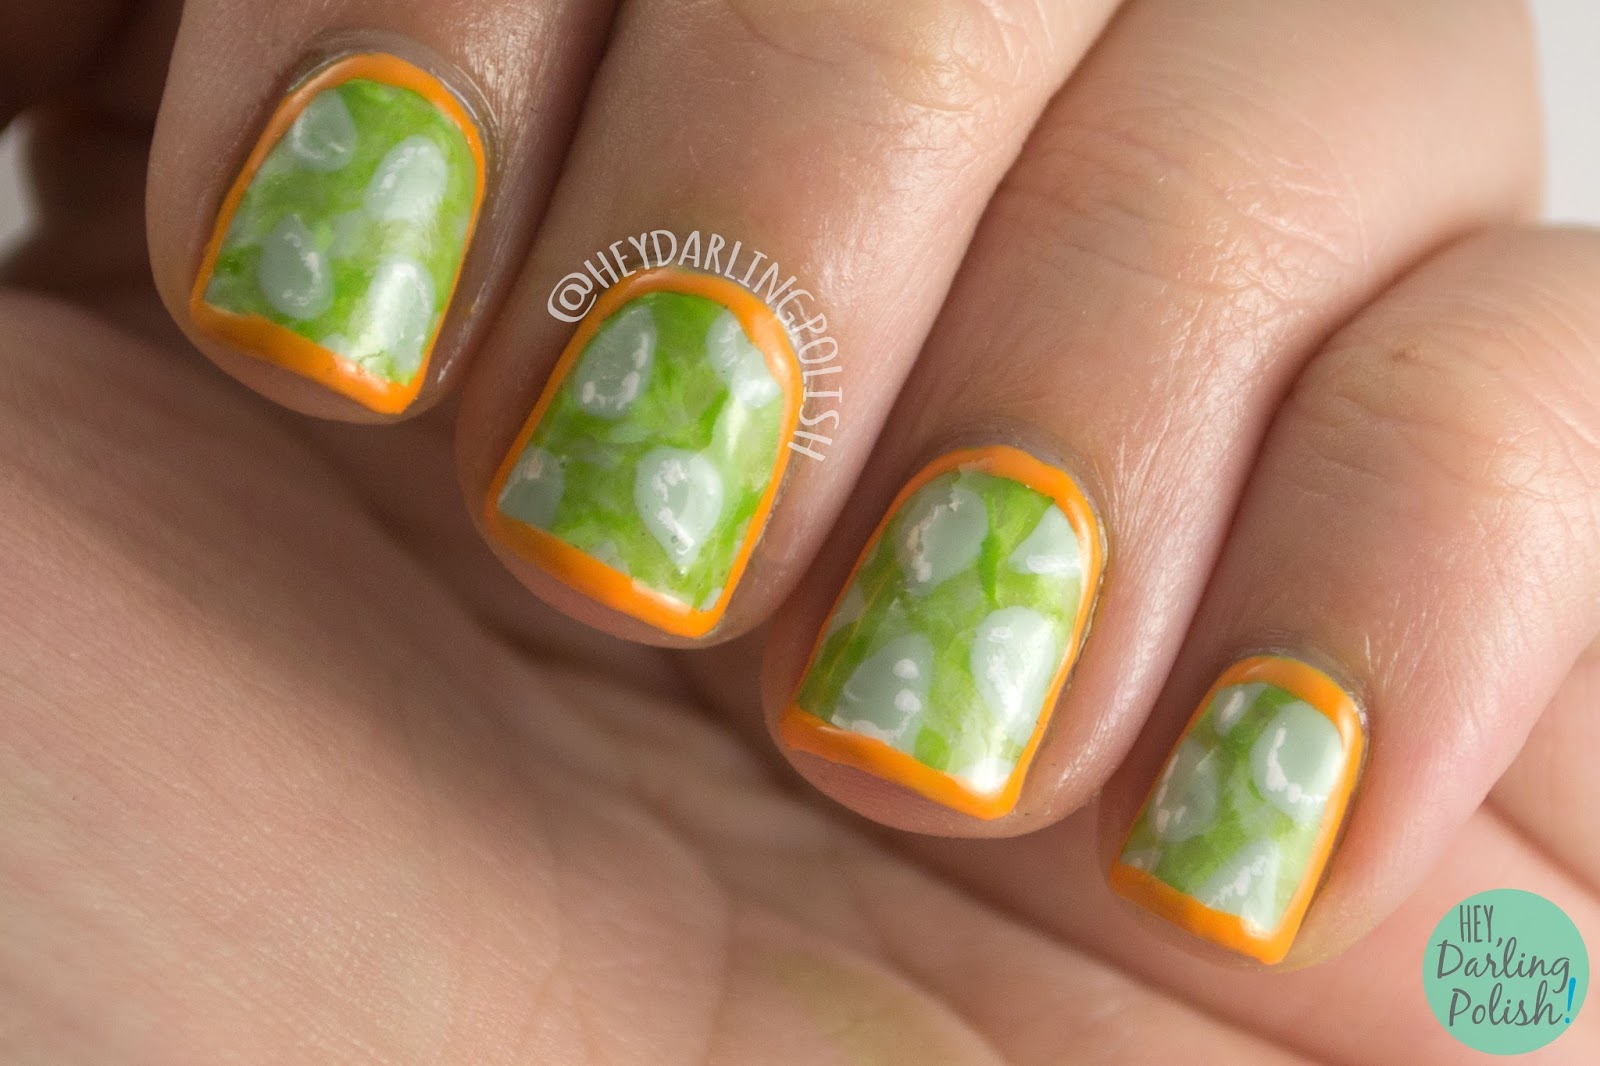 nails, nail art, nail polish, horned melon, fruit, fruit nail art, hey darling polish, oh mon dieu part deux, green, orange, seeds